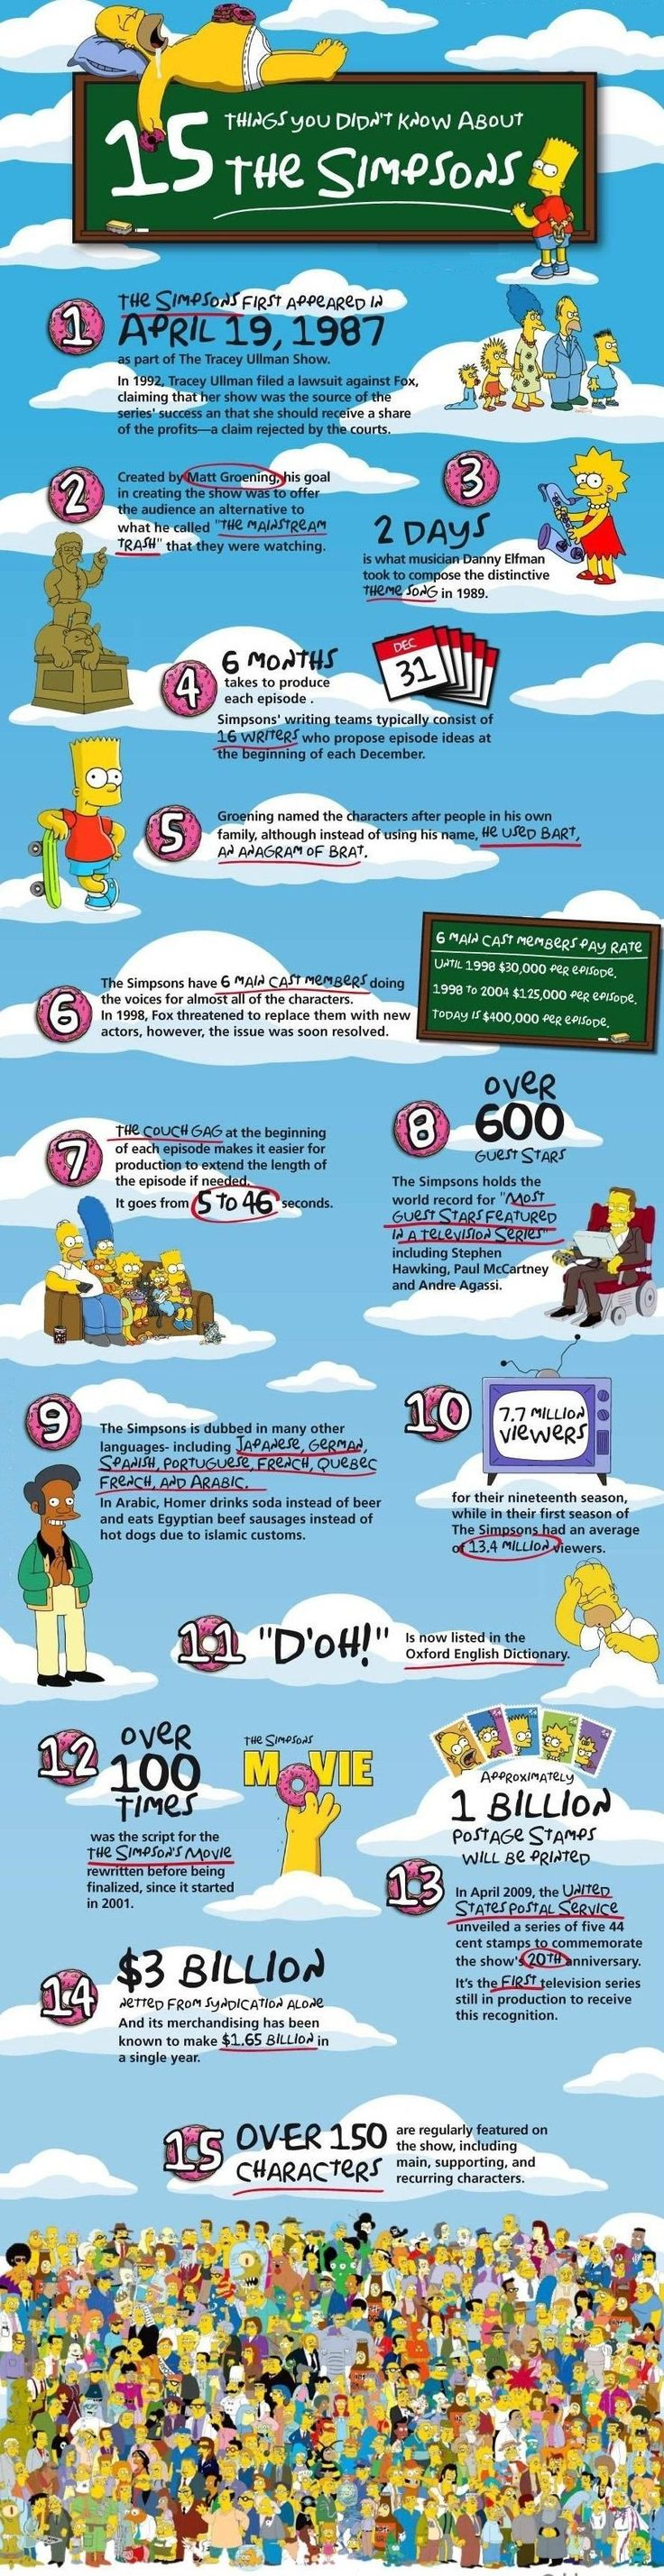 15 Things You Didnt Know About The Simpsons What Do